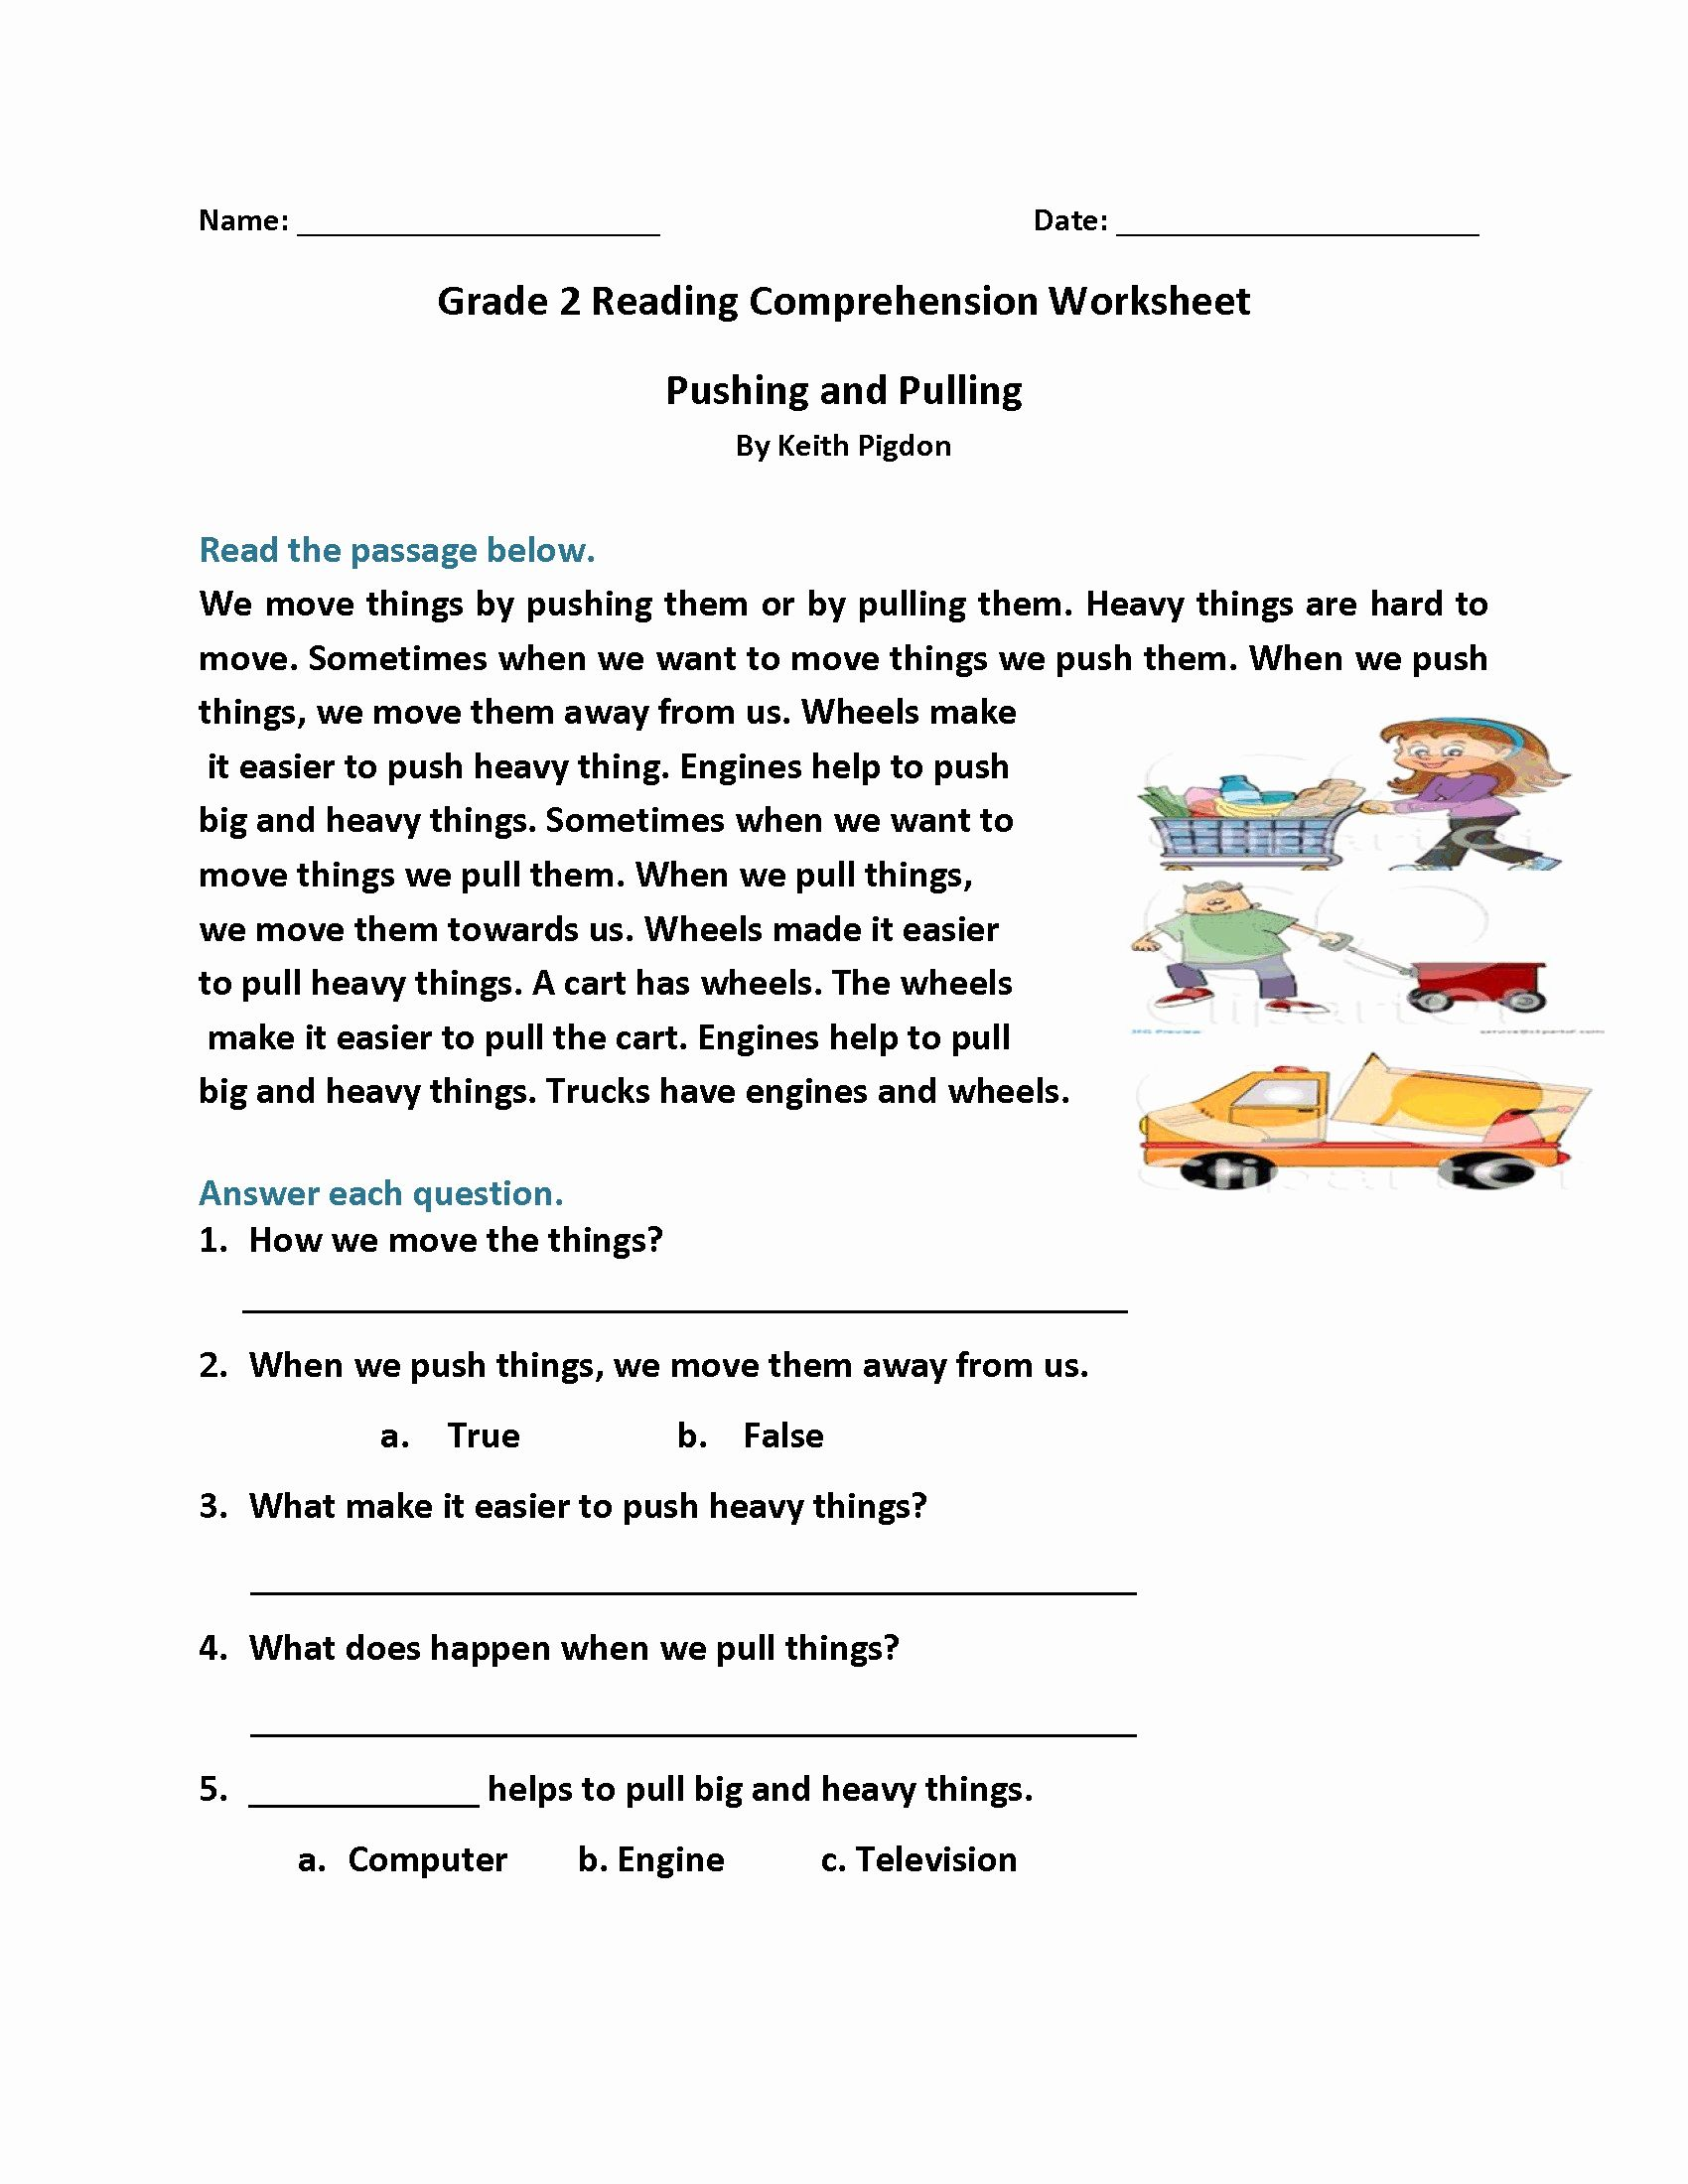 Grade 2 Reading Comprehension Use These Free Printable